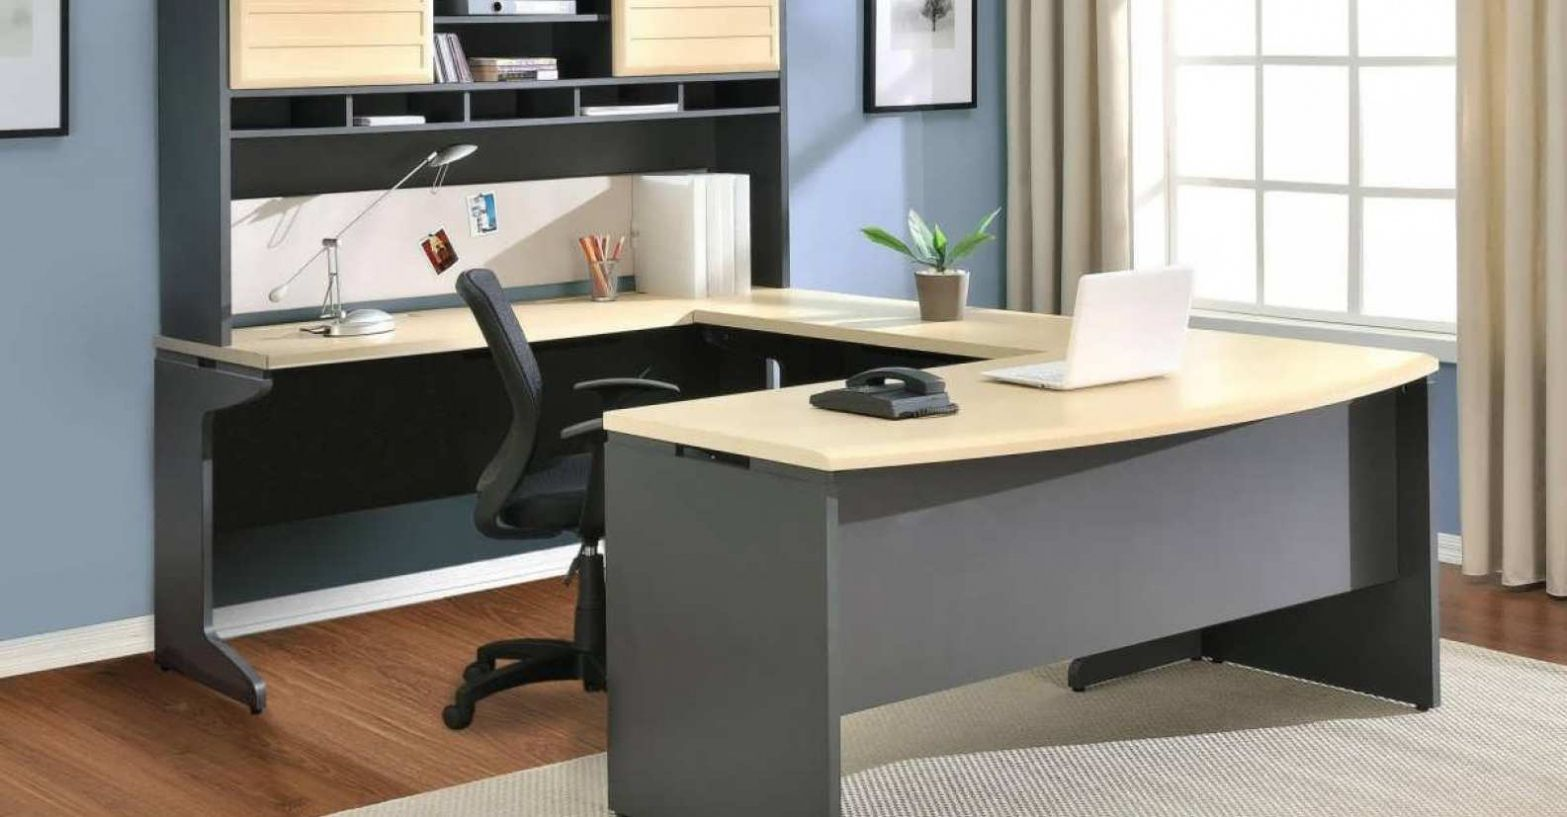 2019 Portable Office Table Furniture For Home Check More At Http